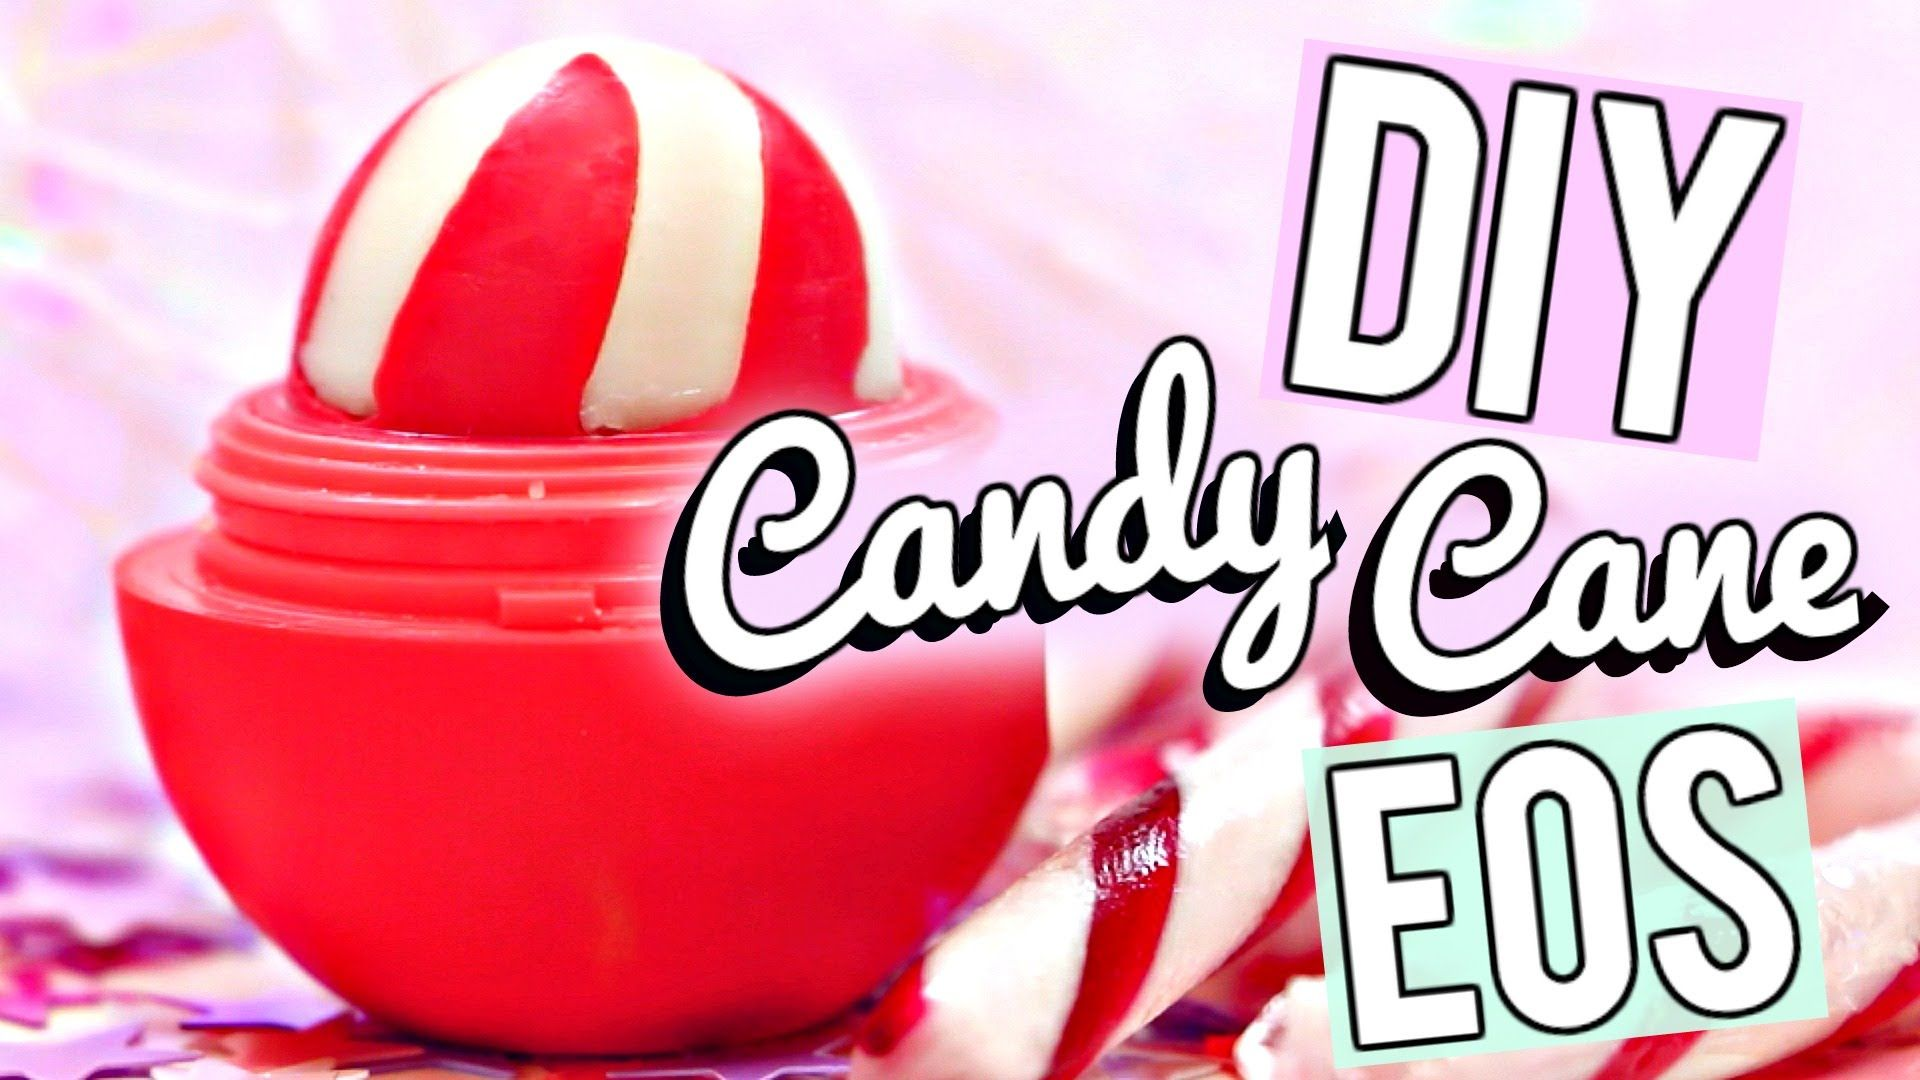 Balm christmas gift turn old eos containers into cool crafts ideas - Diy Candy Cane Eos Lip Balm Easy And Quick Gift Idea